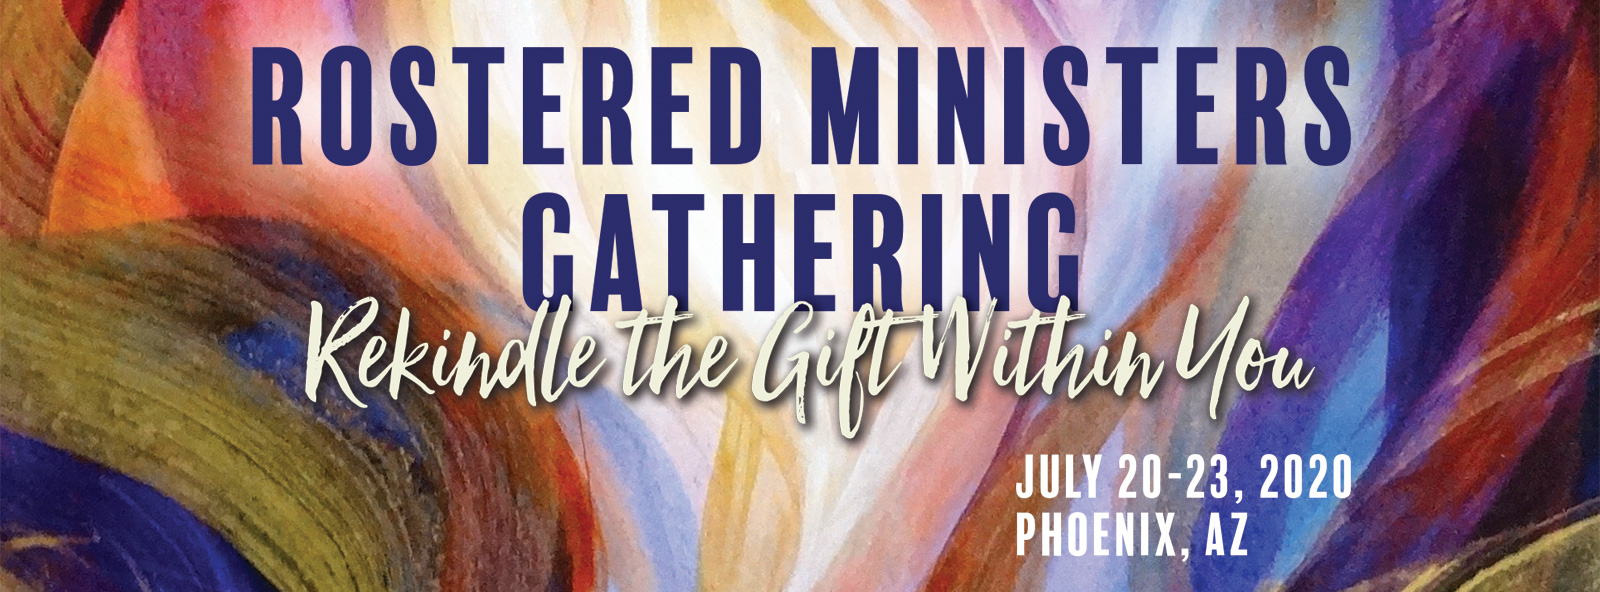 Rekindle the Gift Within You - Rostered Ministers Gathering